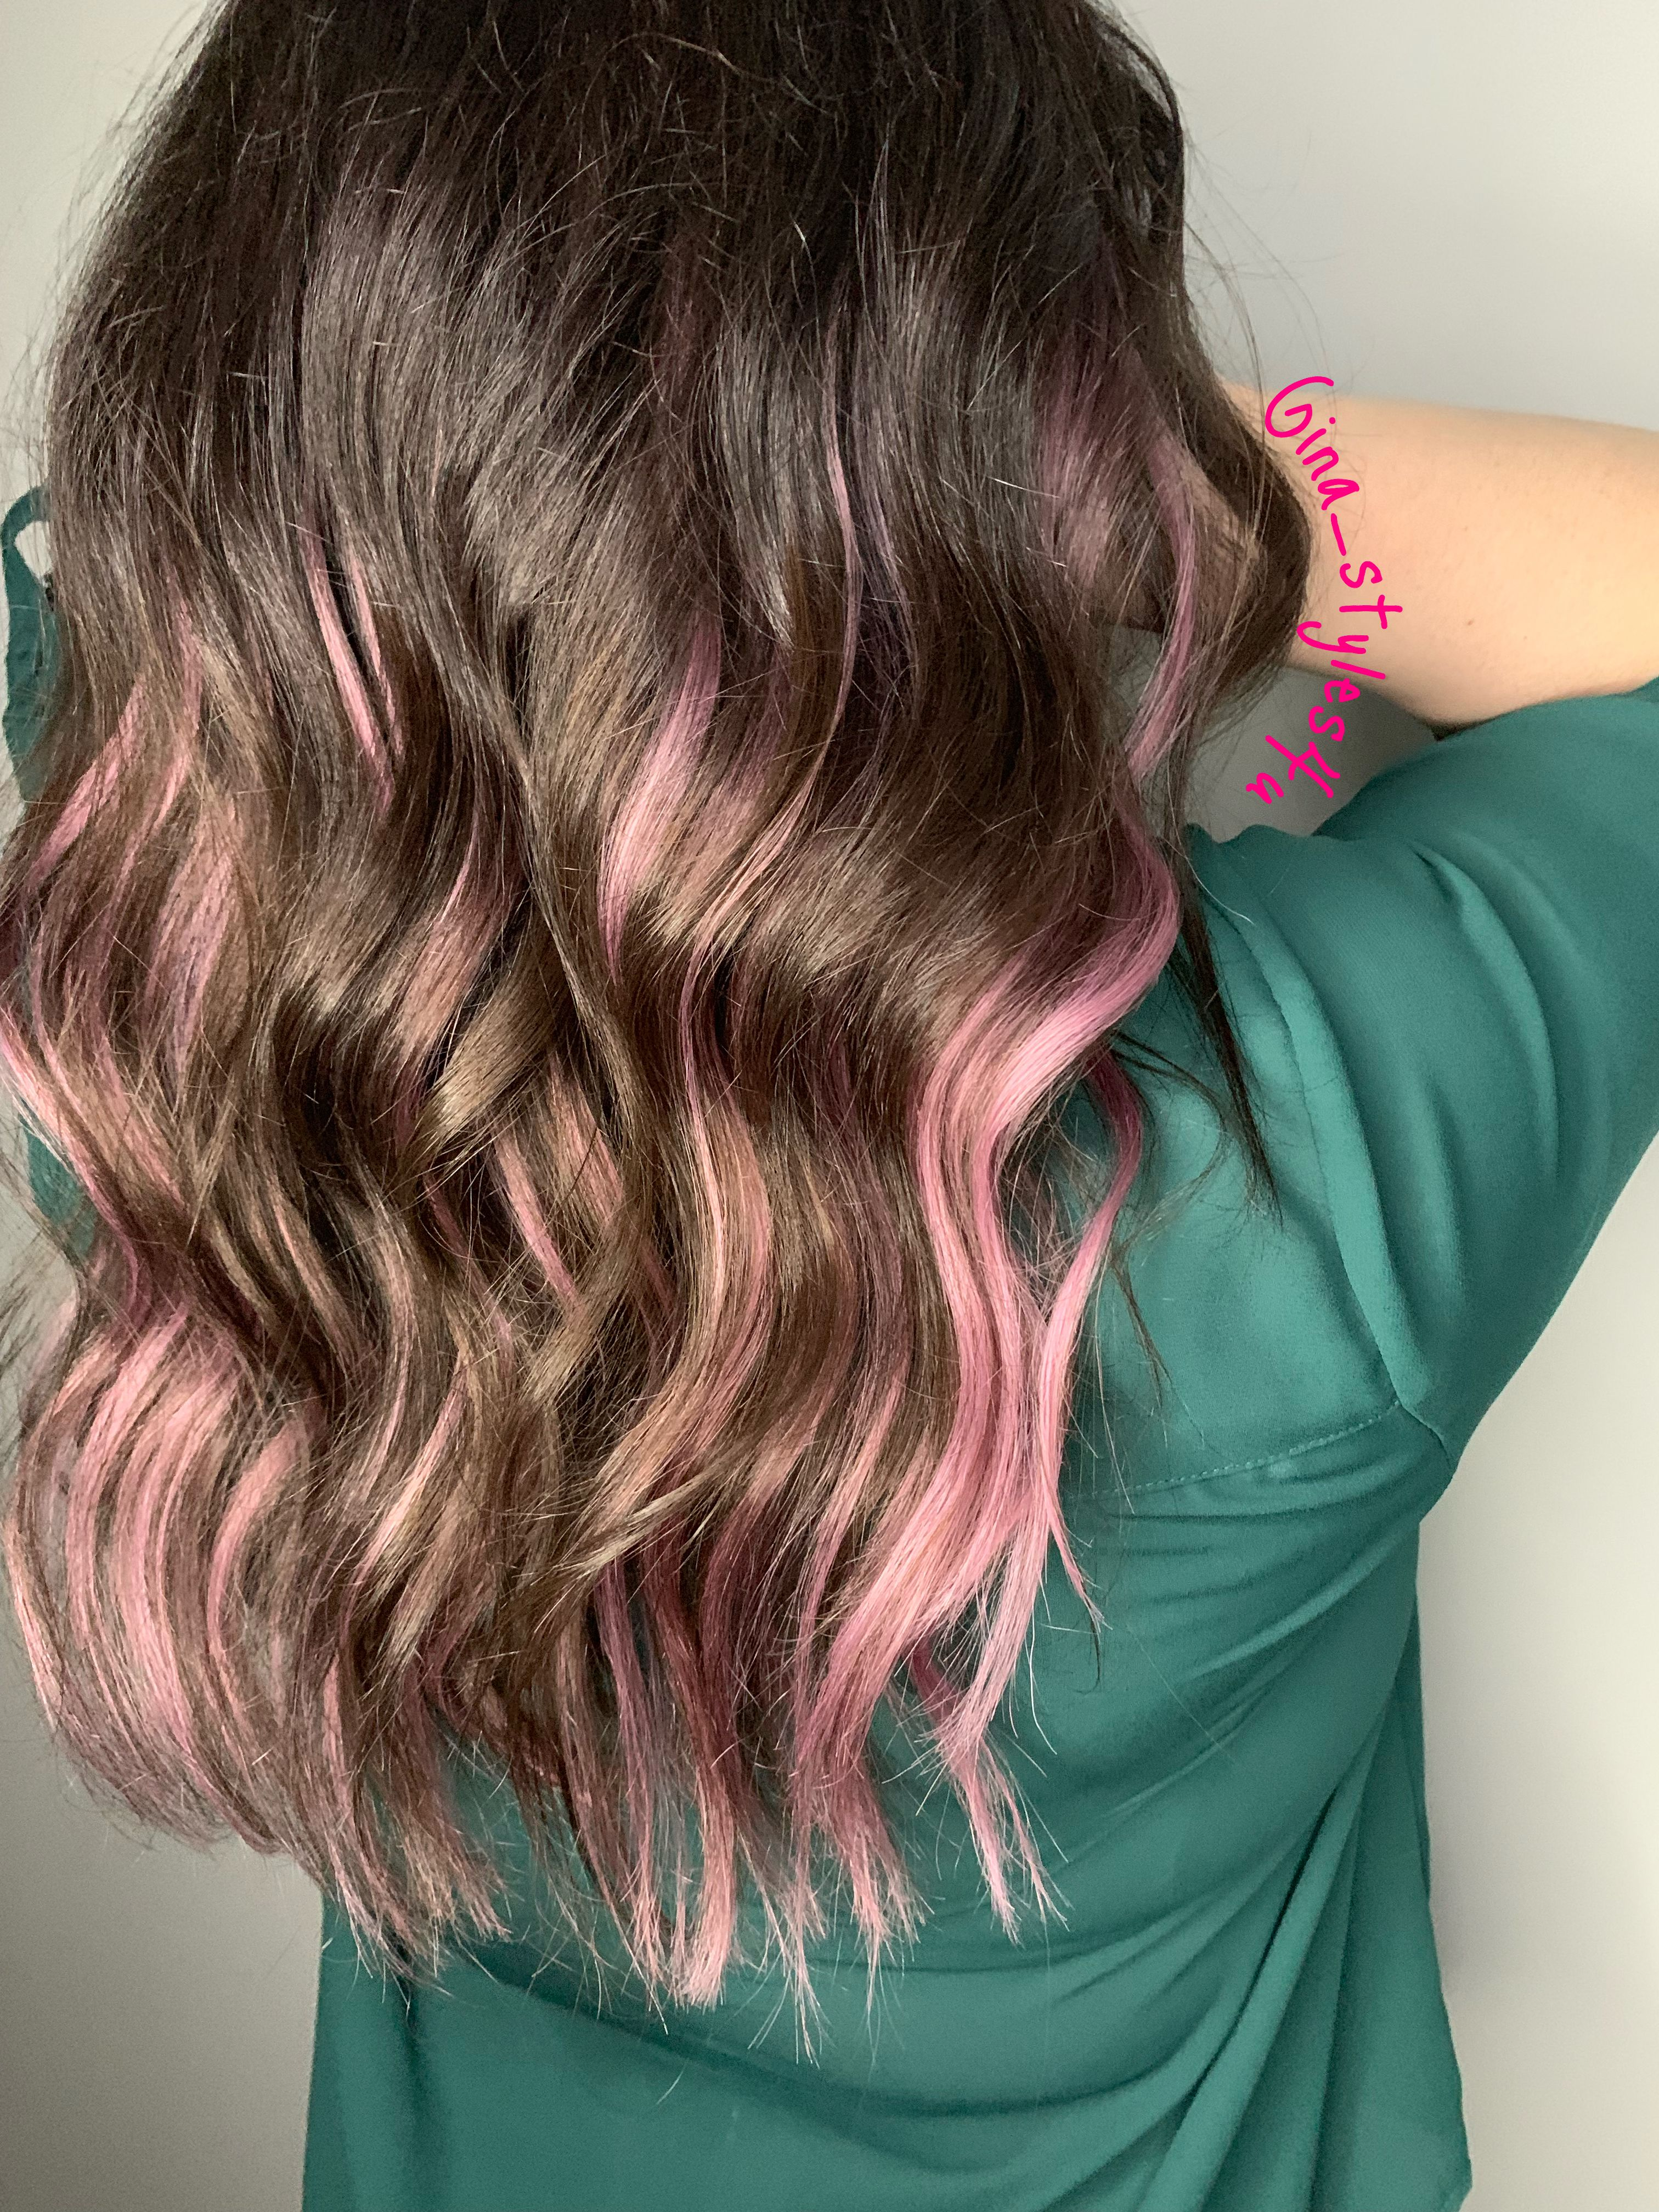 Pink Highlights Pink Hair Streaks Pink Hair Highlights Brown Hair With Pink Highlights